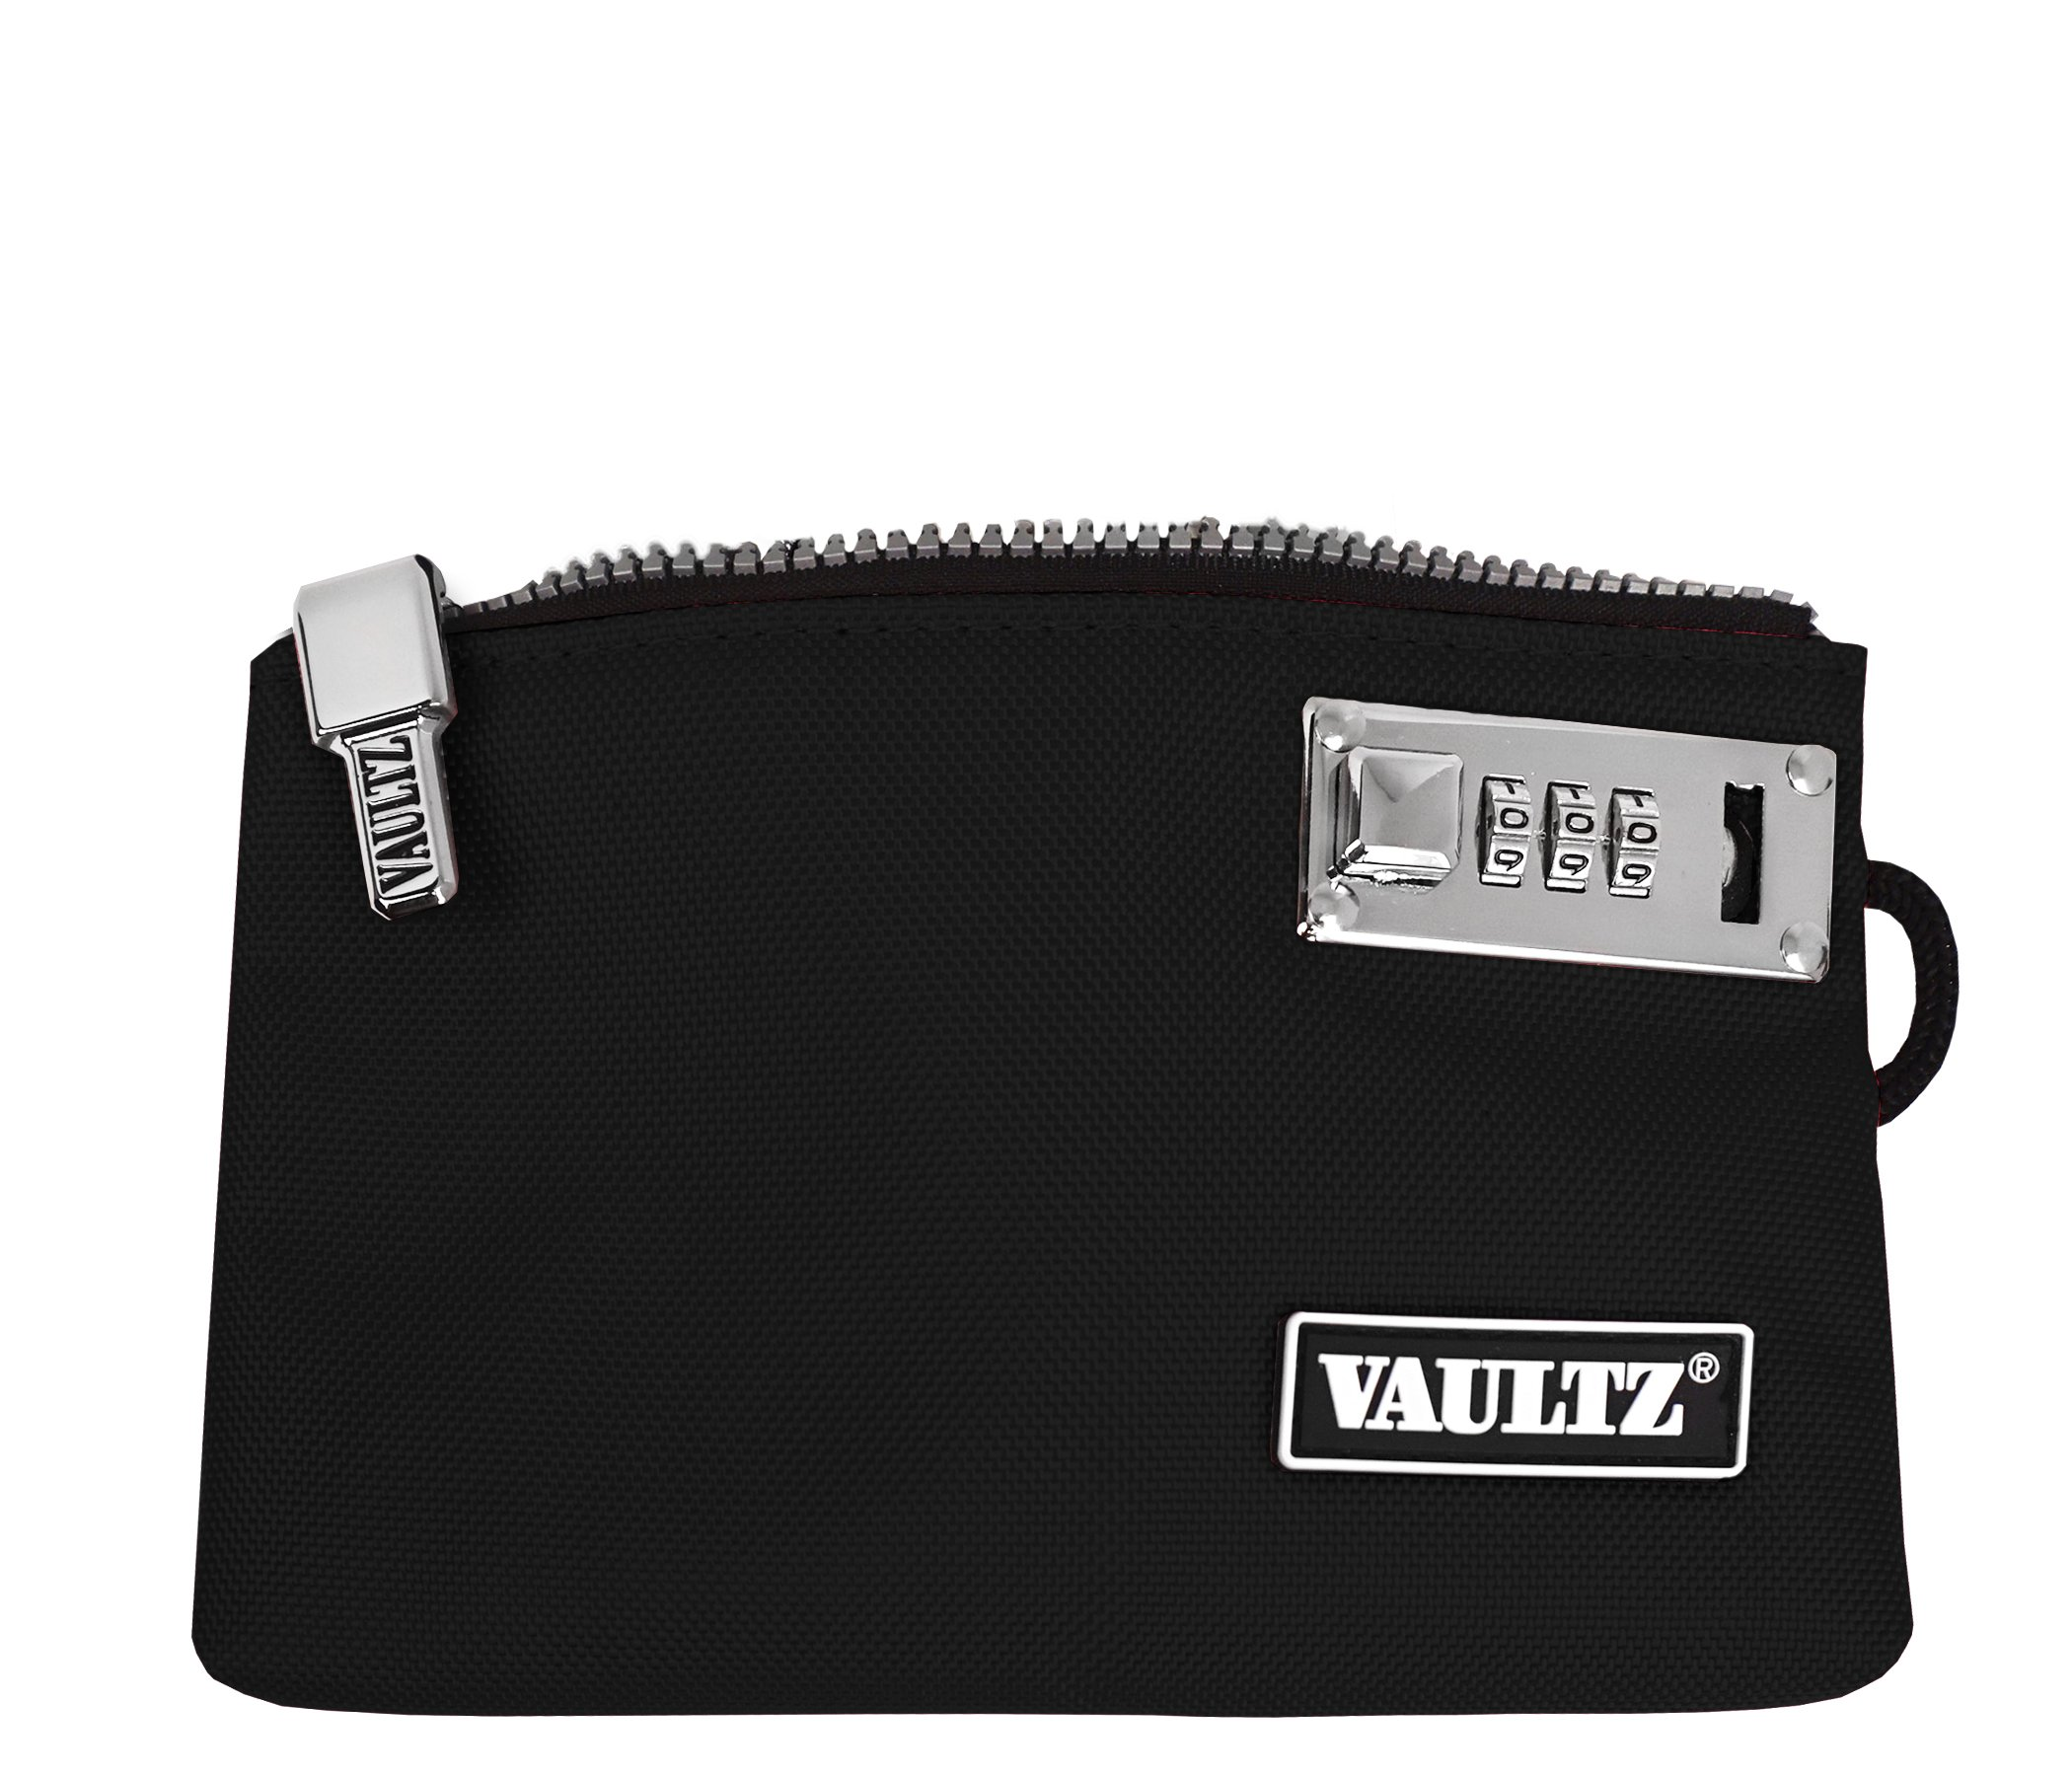 VaporVaultz Locking Accessory Pouch, 1 x 5.x 8 Inches, Black (VZ00503)